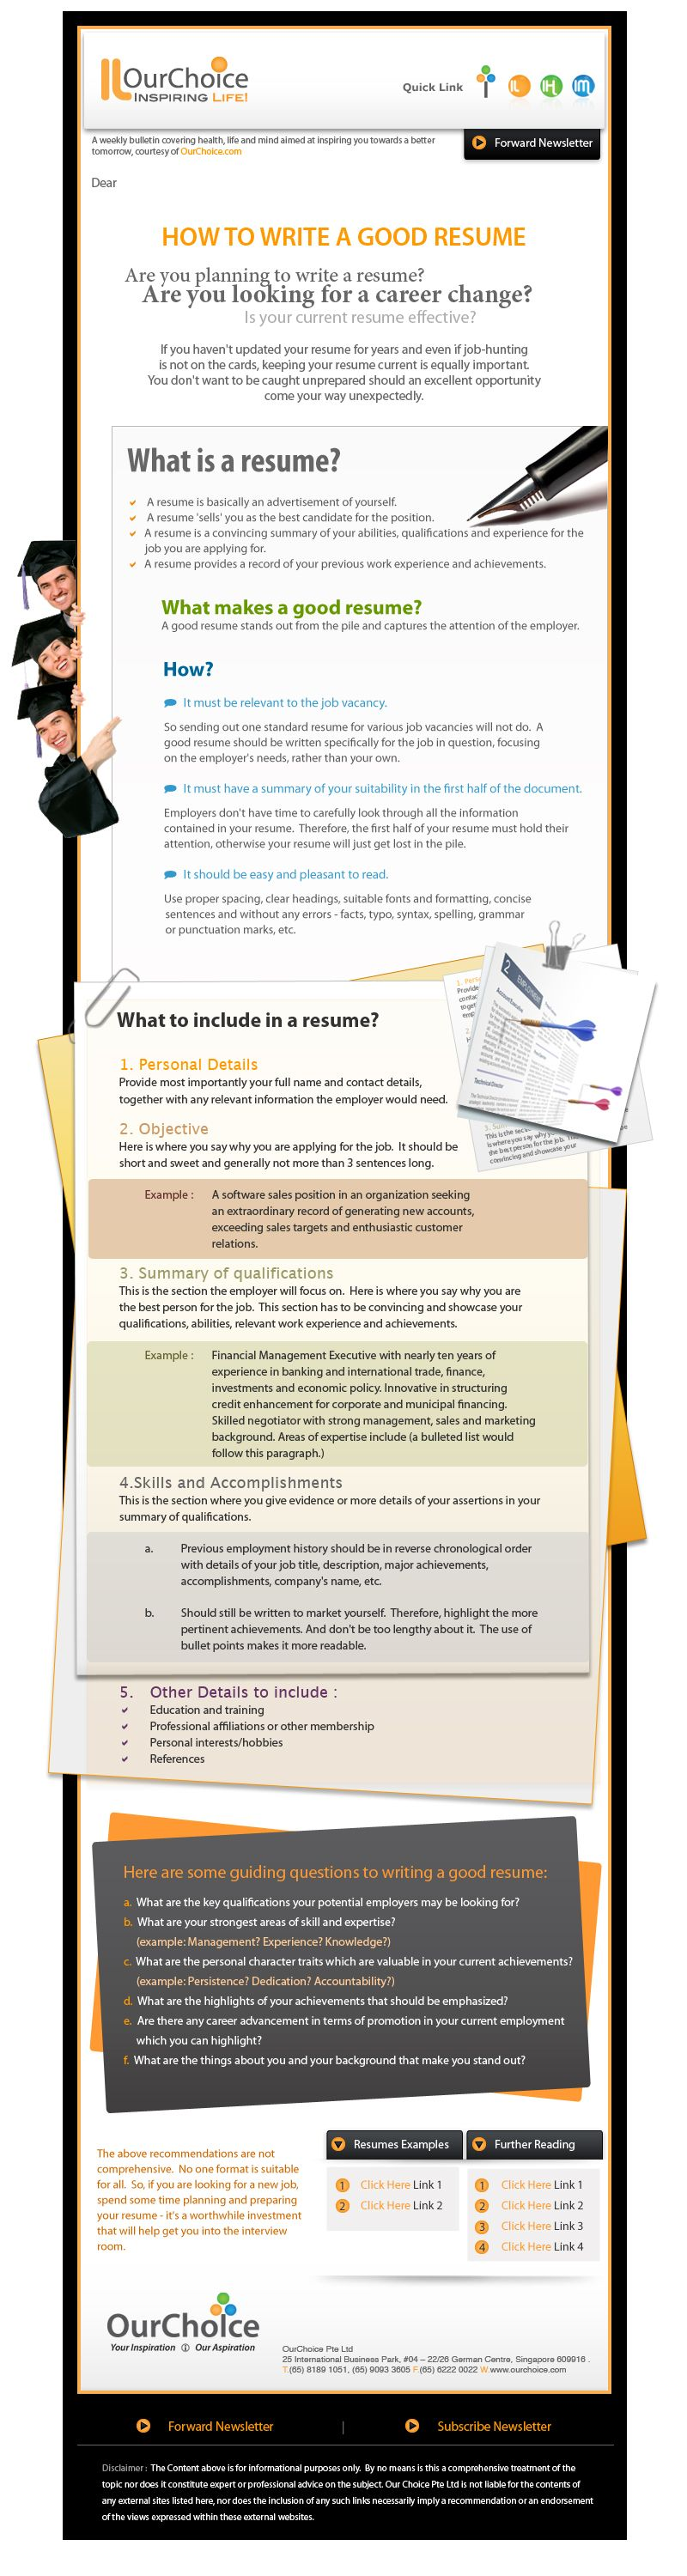 Some Resume Writing Good Tips Infographic Career